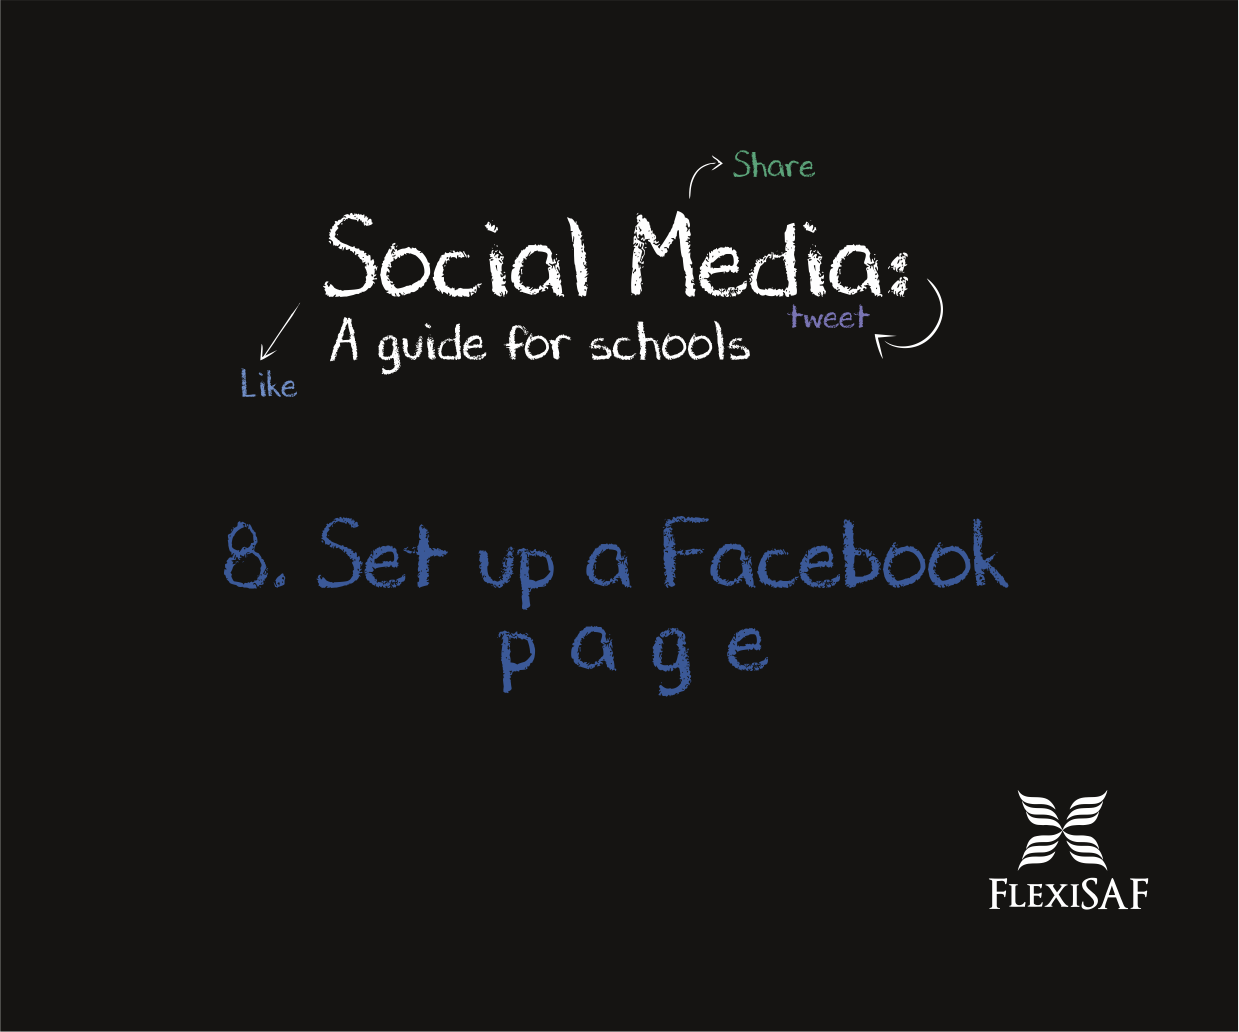 8. Set up a Facebook Page